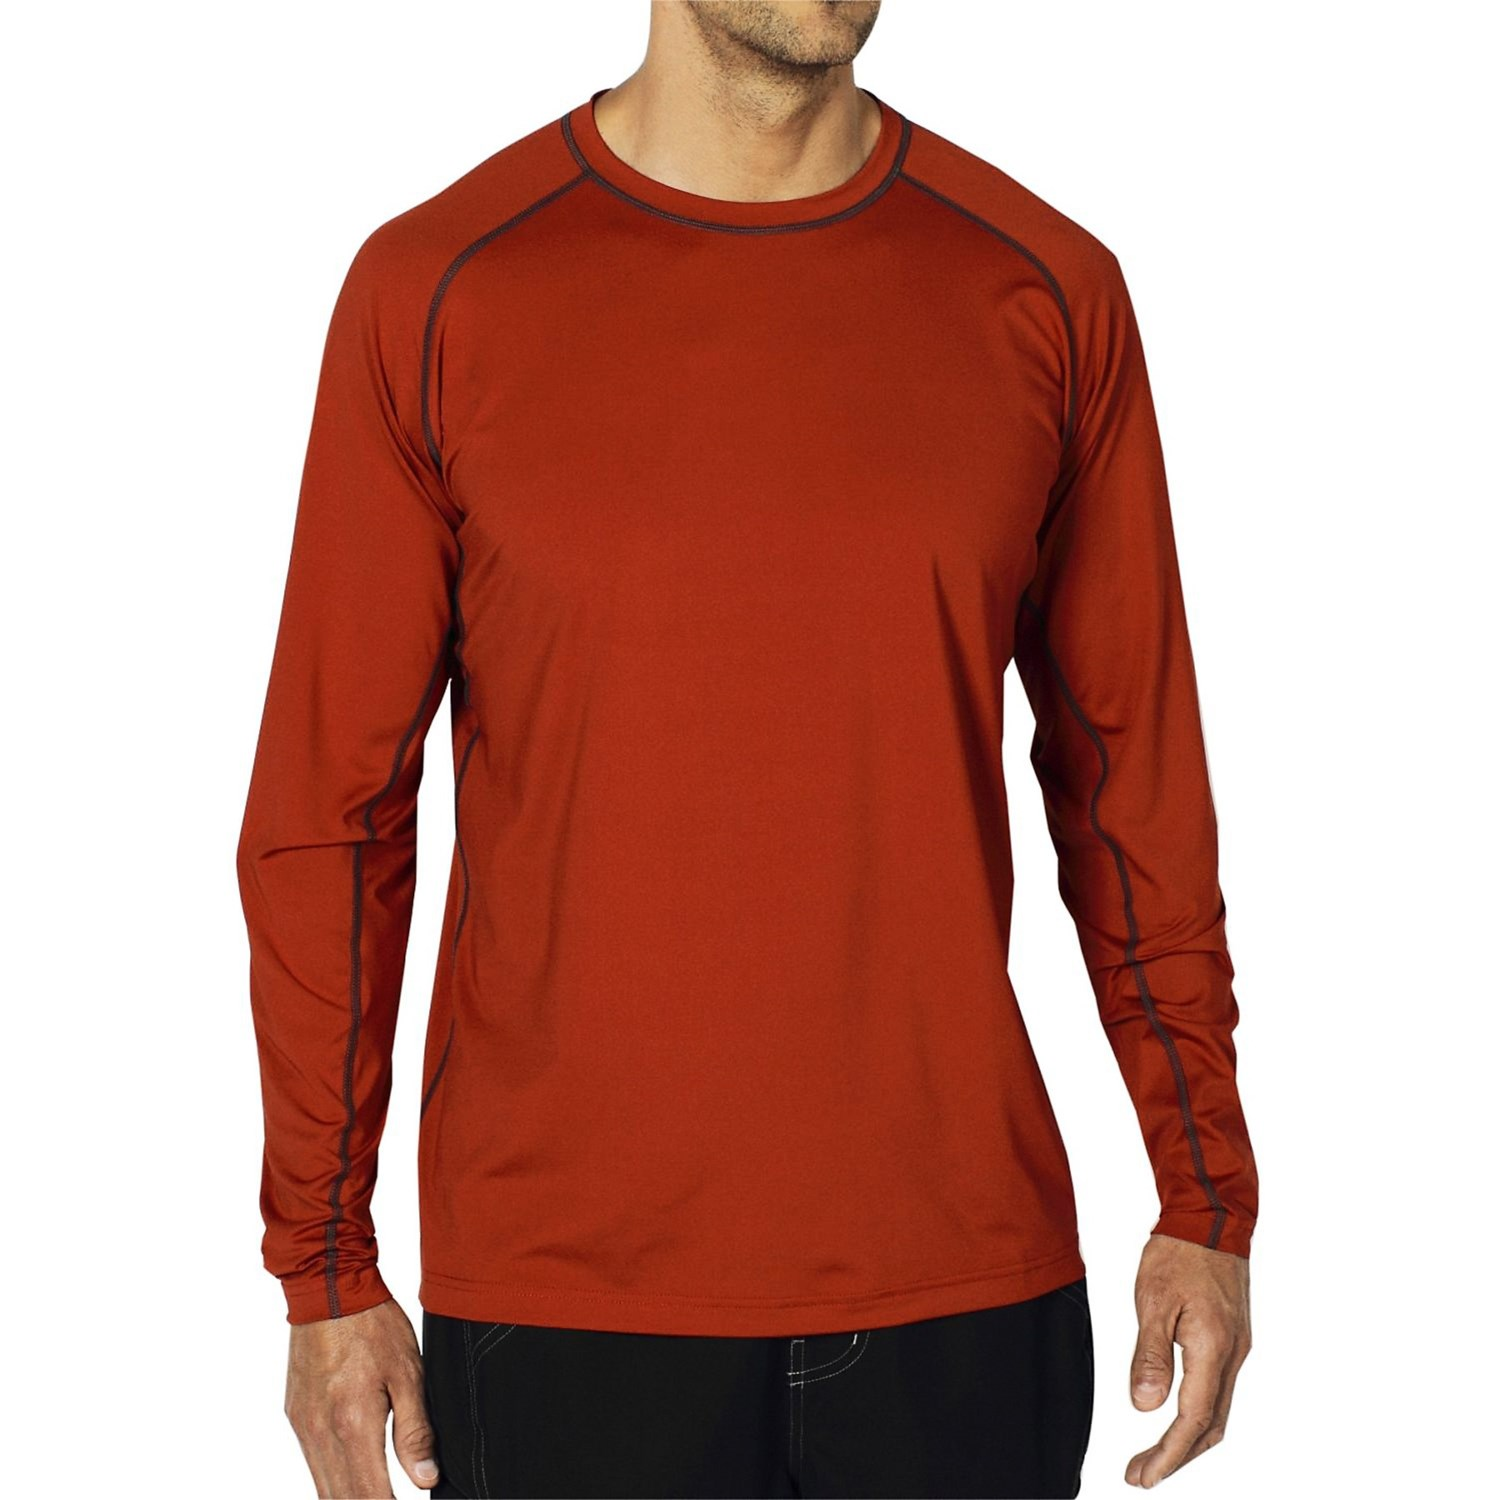 Sierra trading post for Cool long sleeve t shirts for men